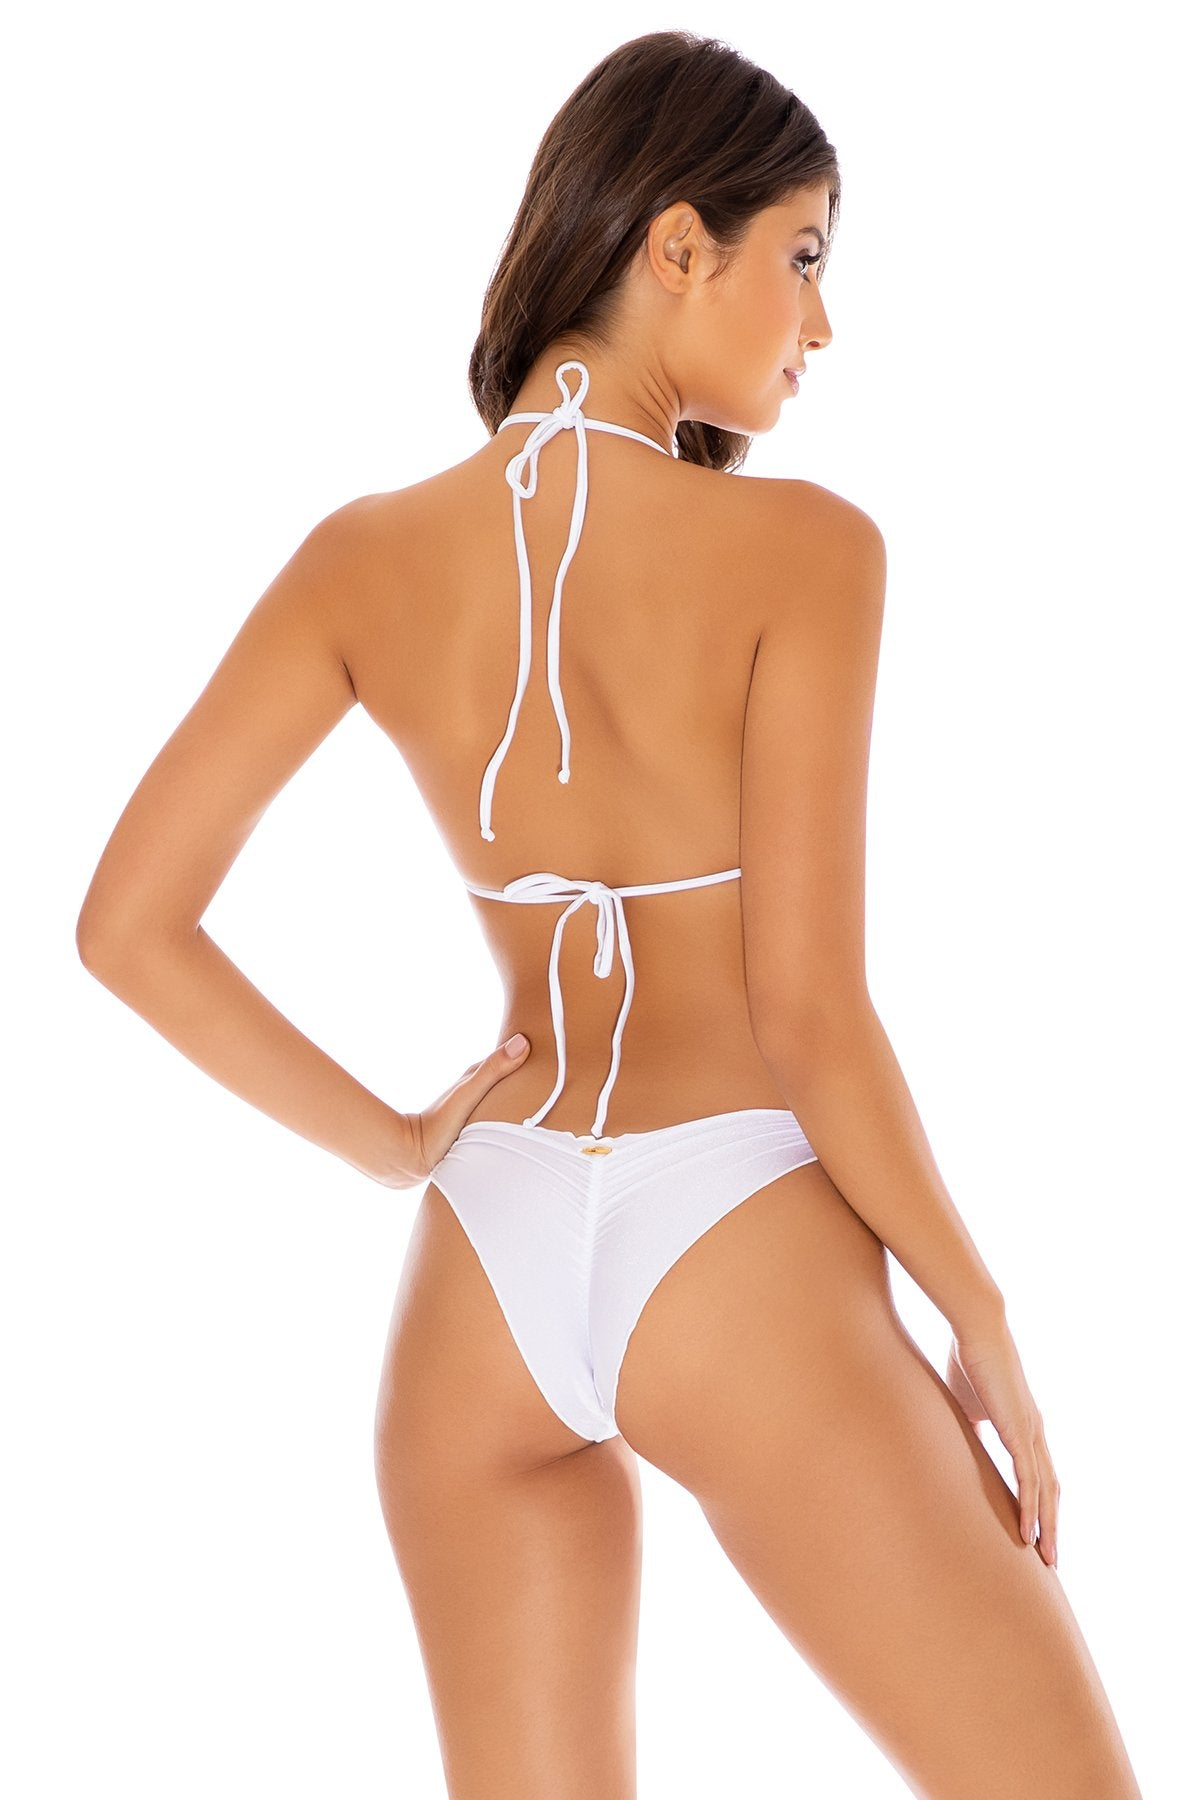 COSITA BUENA - Wavey Triangle Top & Strappy  Ruched Back Bottom • White